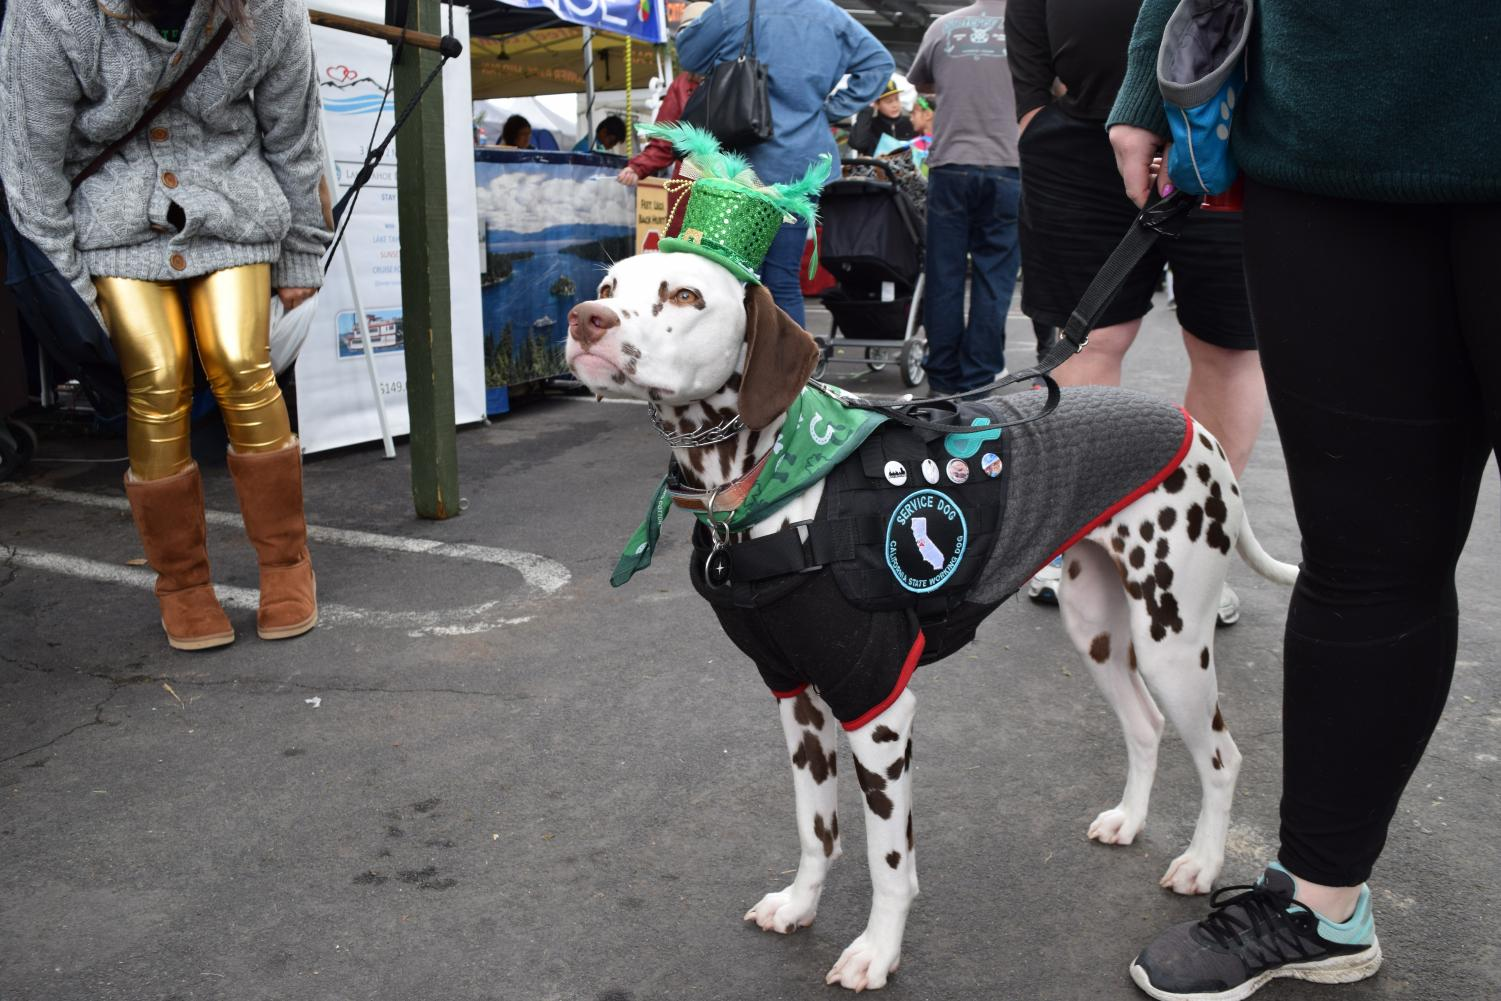 A service dog all decked out for the St. Patrick's Day Festivities.